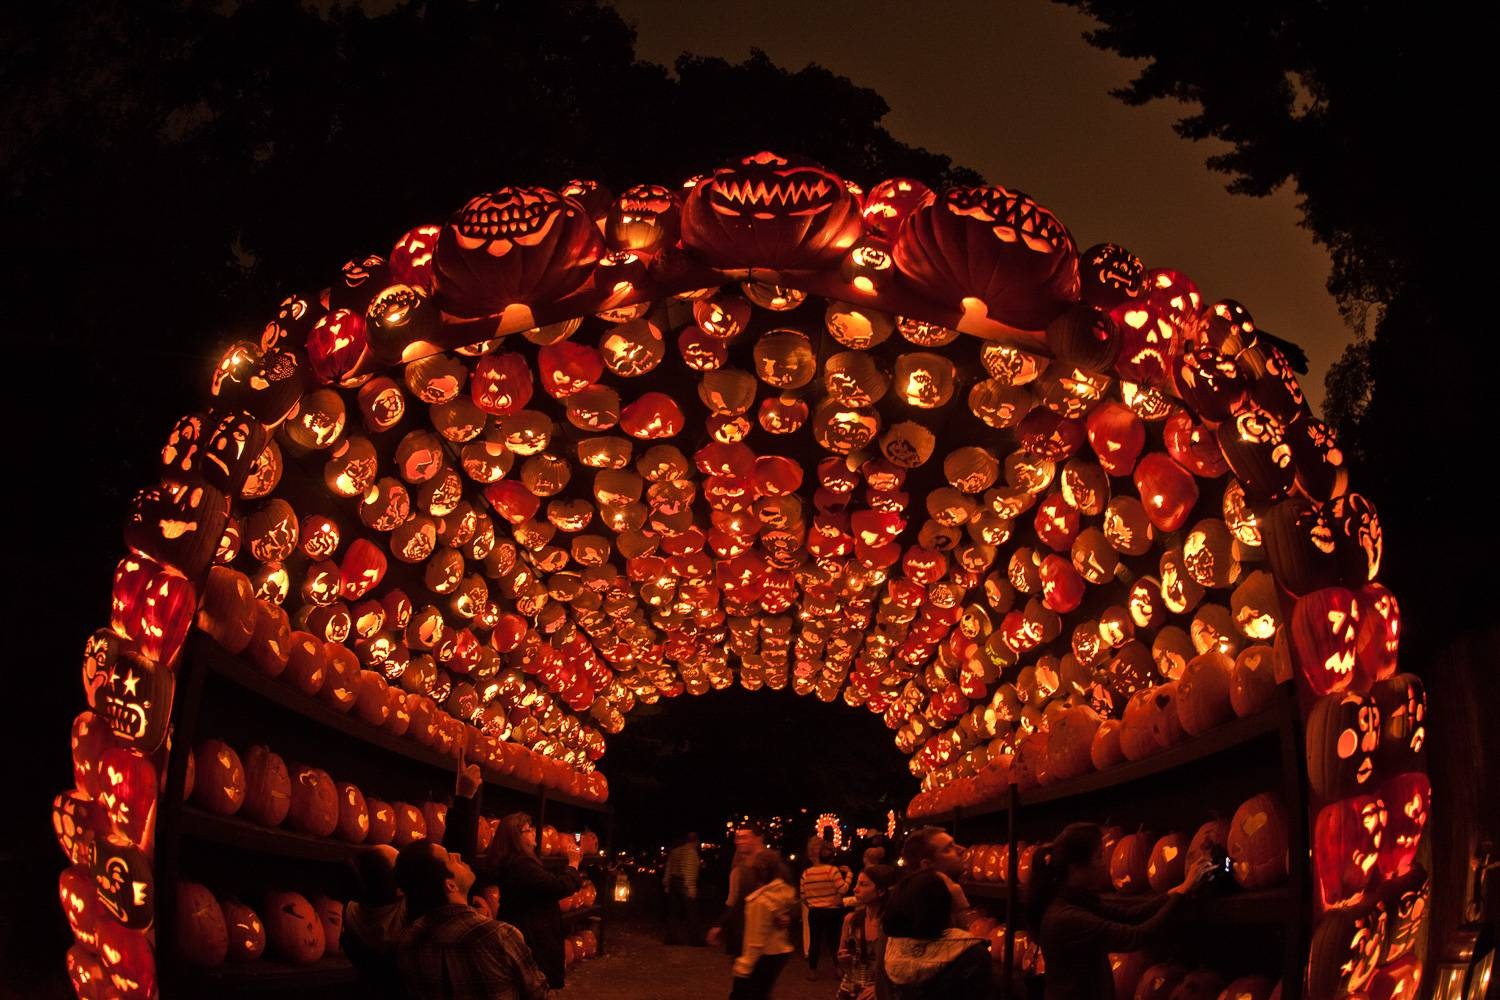 Immagine di jack o' lantern illuminate e disposte ad arco alla Great Jack o' Lantern Blaze a New York.